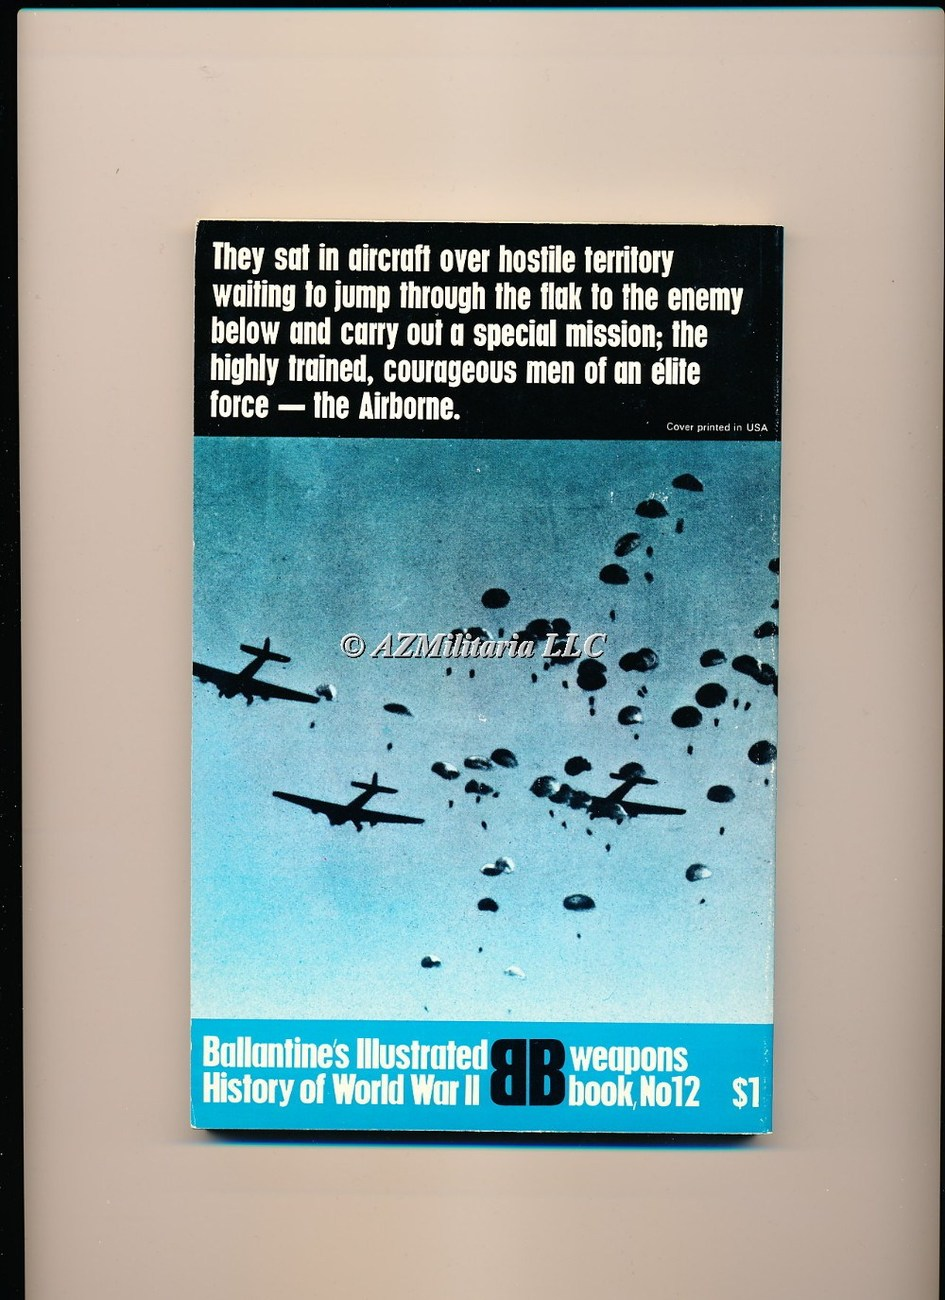 Airborne (Weapons Book No 12)